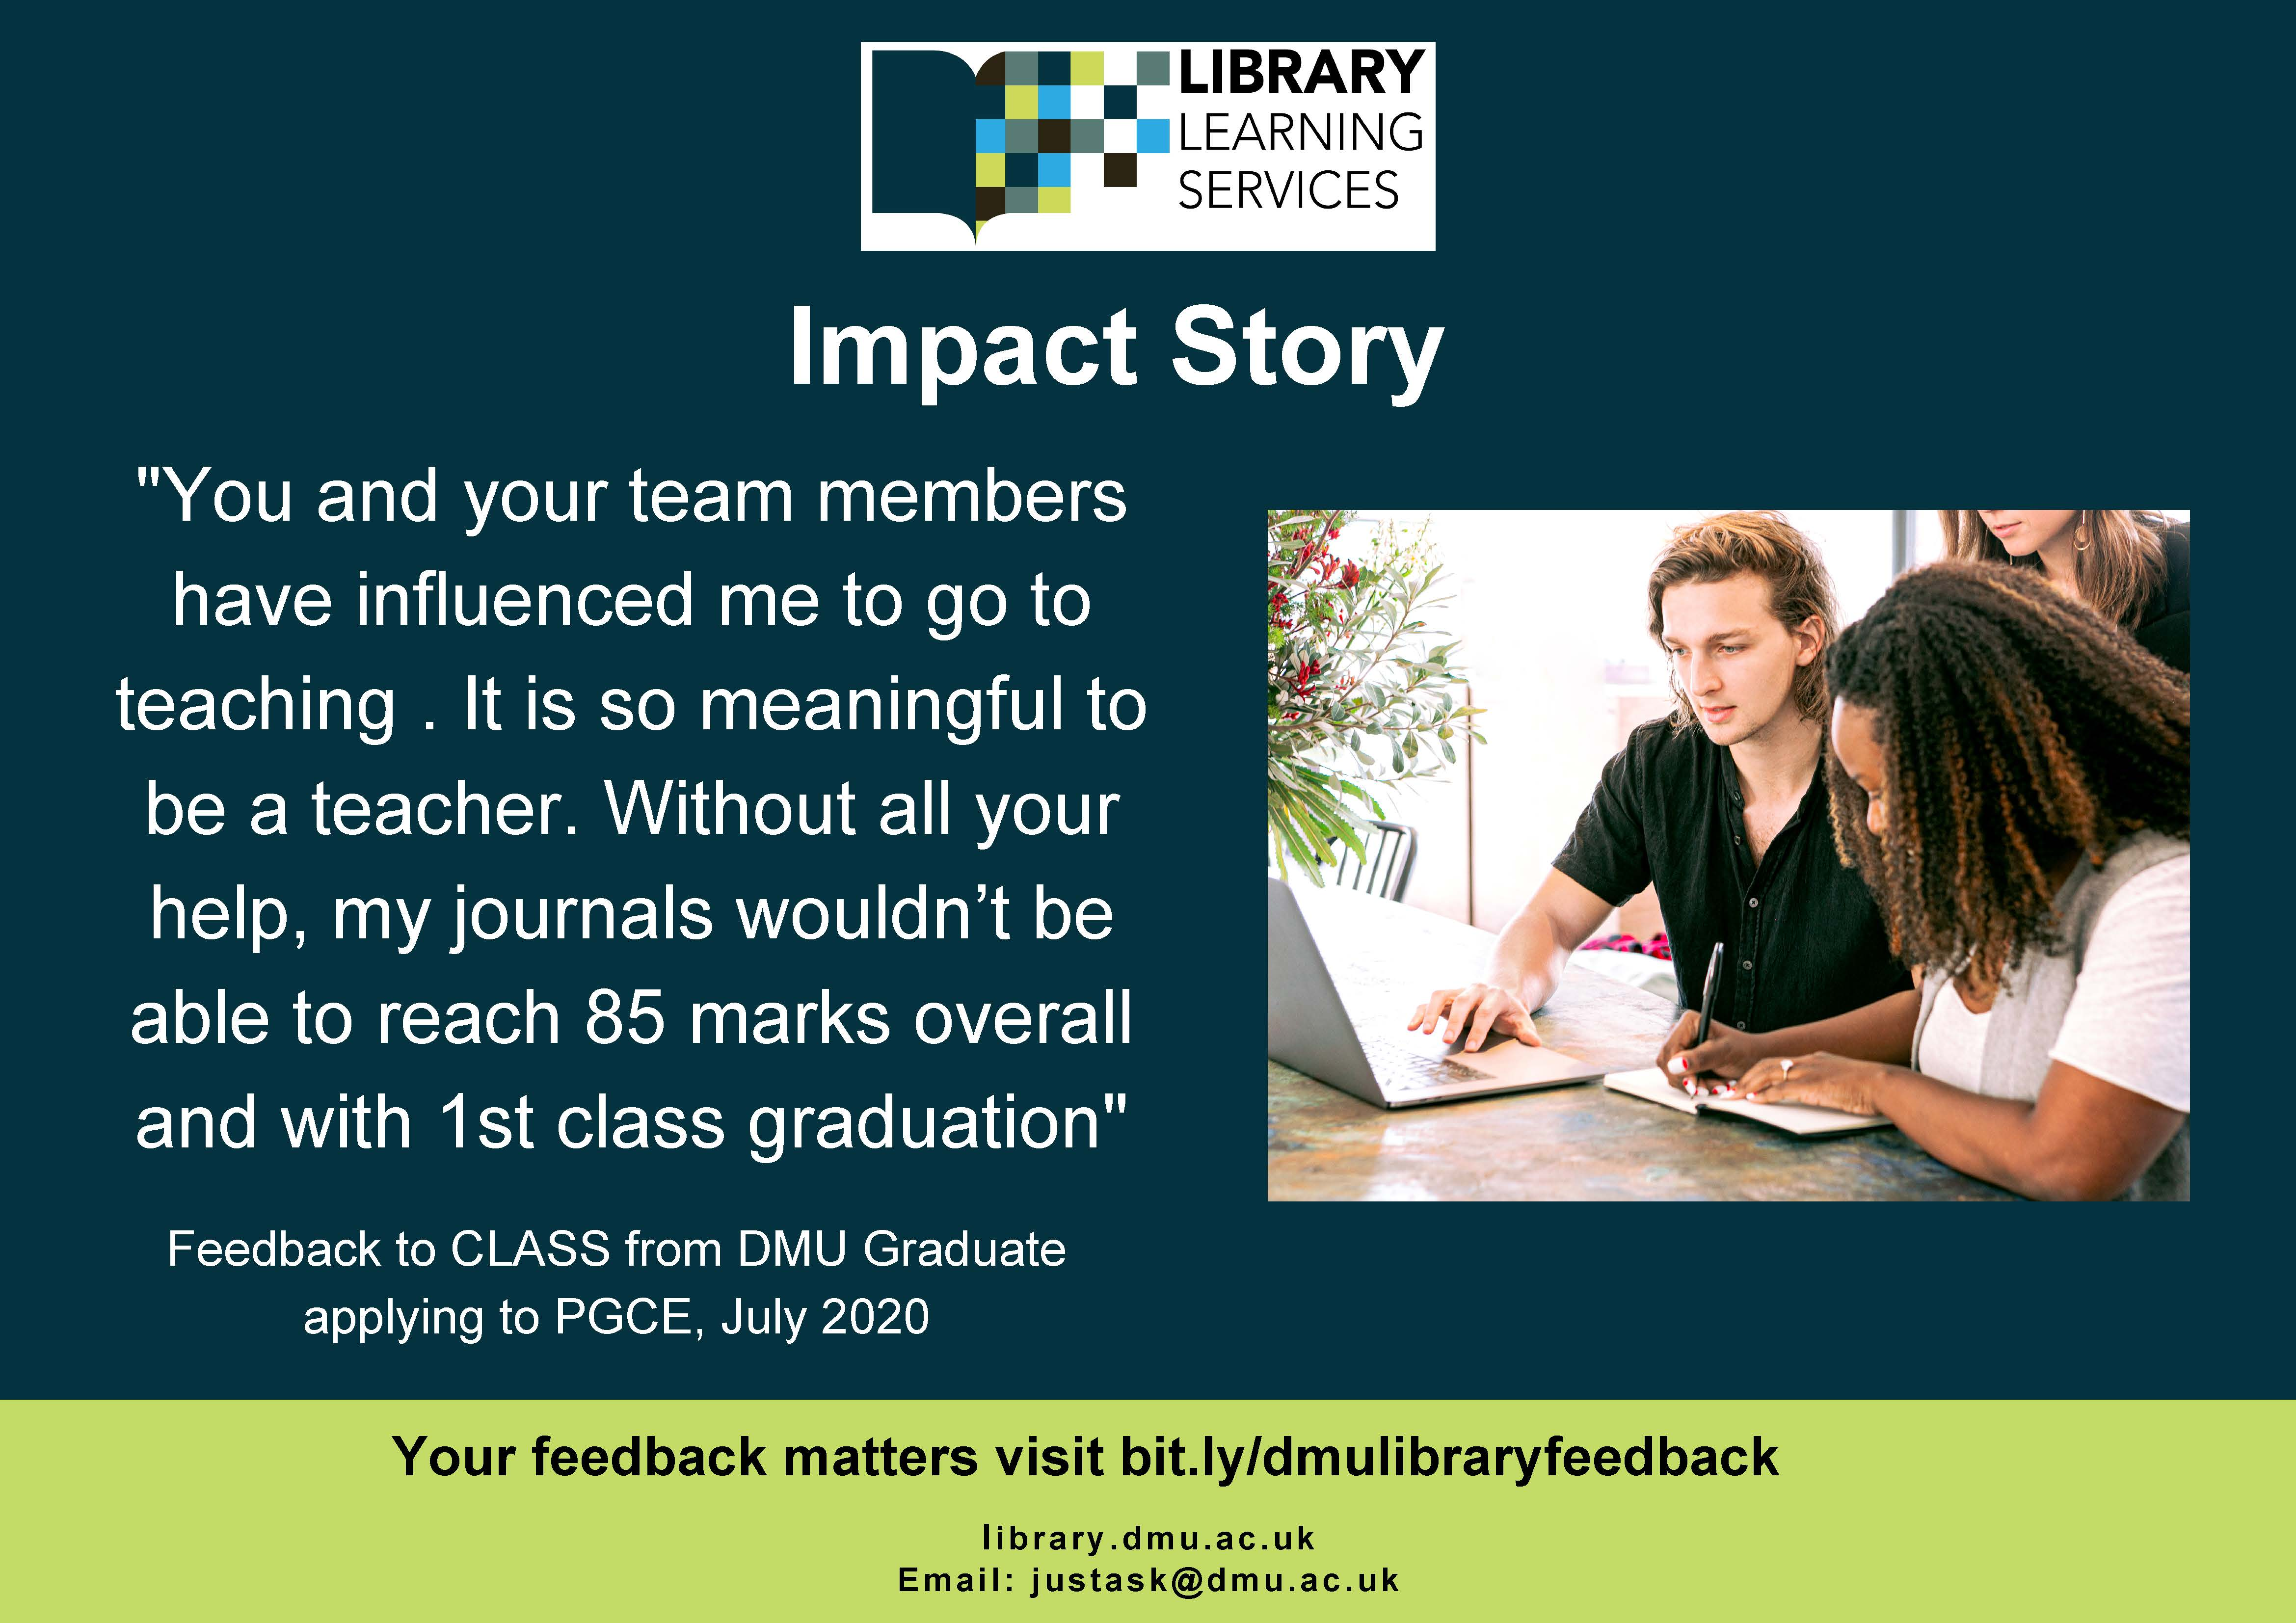 """Impact Story: """"You and your team members have influenced me to go to teaching . It is so meaningful to be a teacher. Without all your help, my journals wouldn't be able to reach 85 marks overall and with 1st class graduation"""" Feedback to CLASS from DMU Graduate applying to PGCE, July 2020. Your feedback matters visit bit.ly/dmulibraryfeedback"""